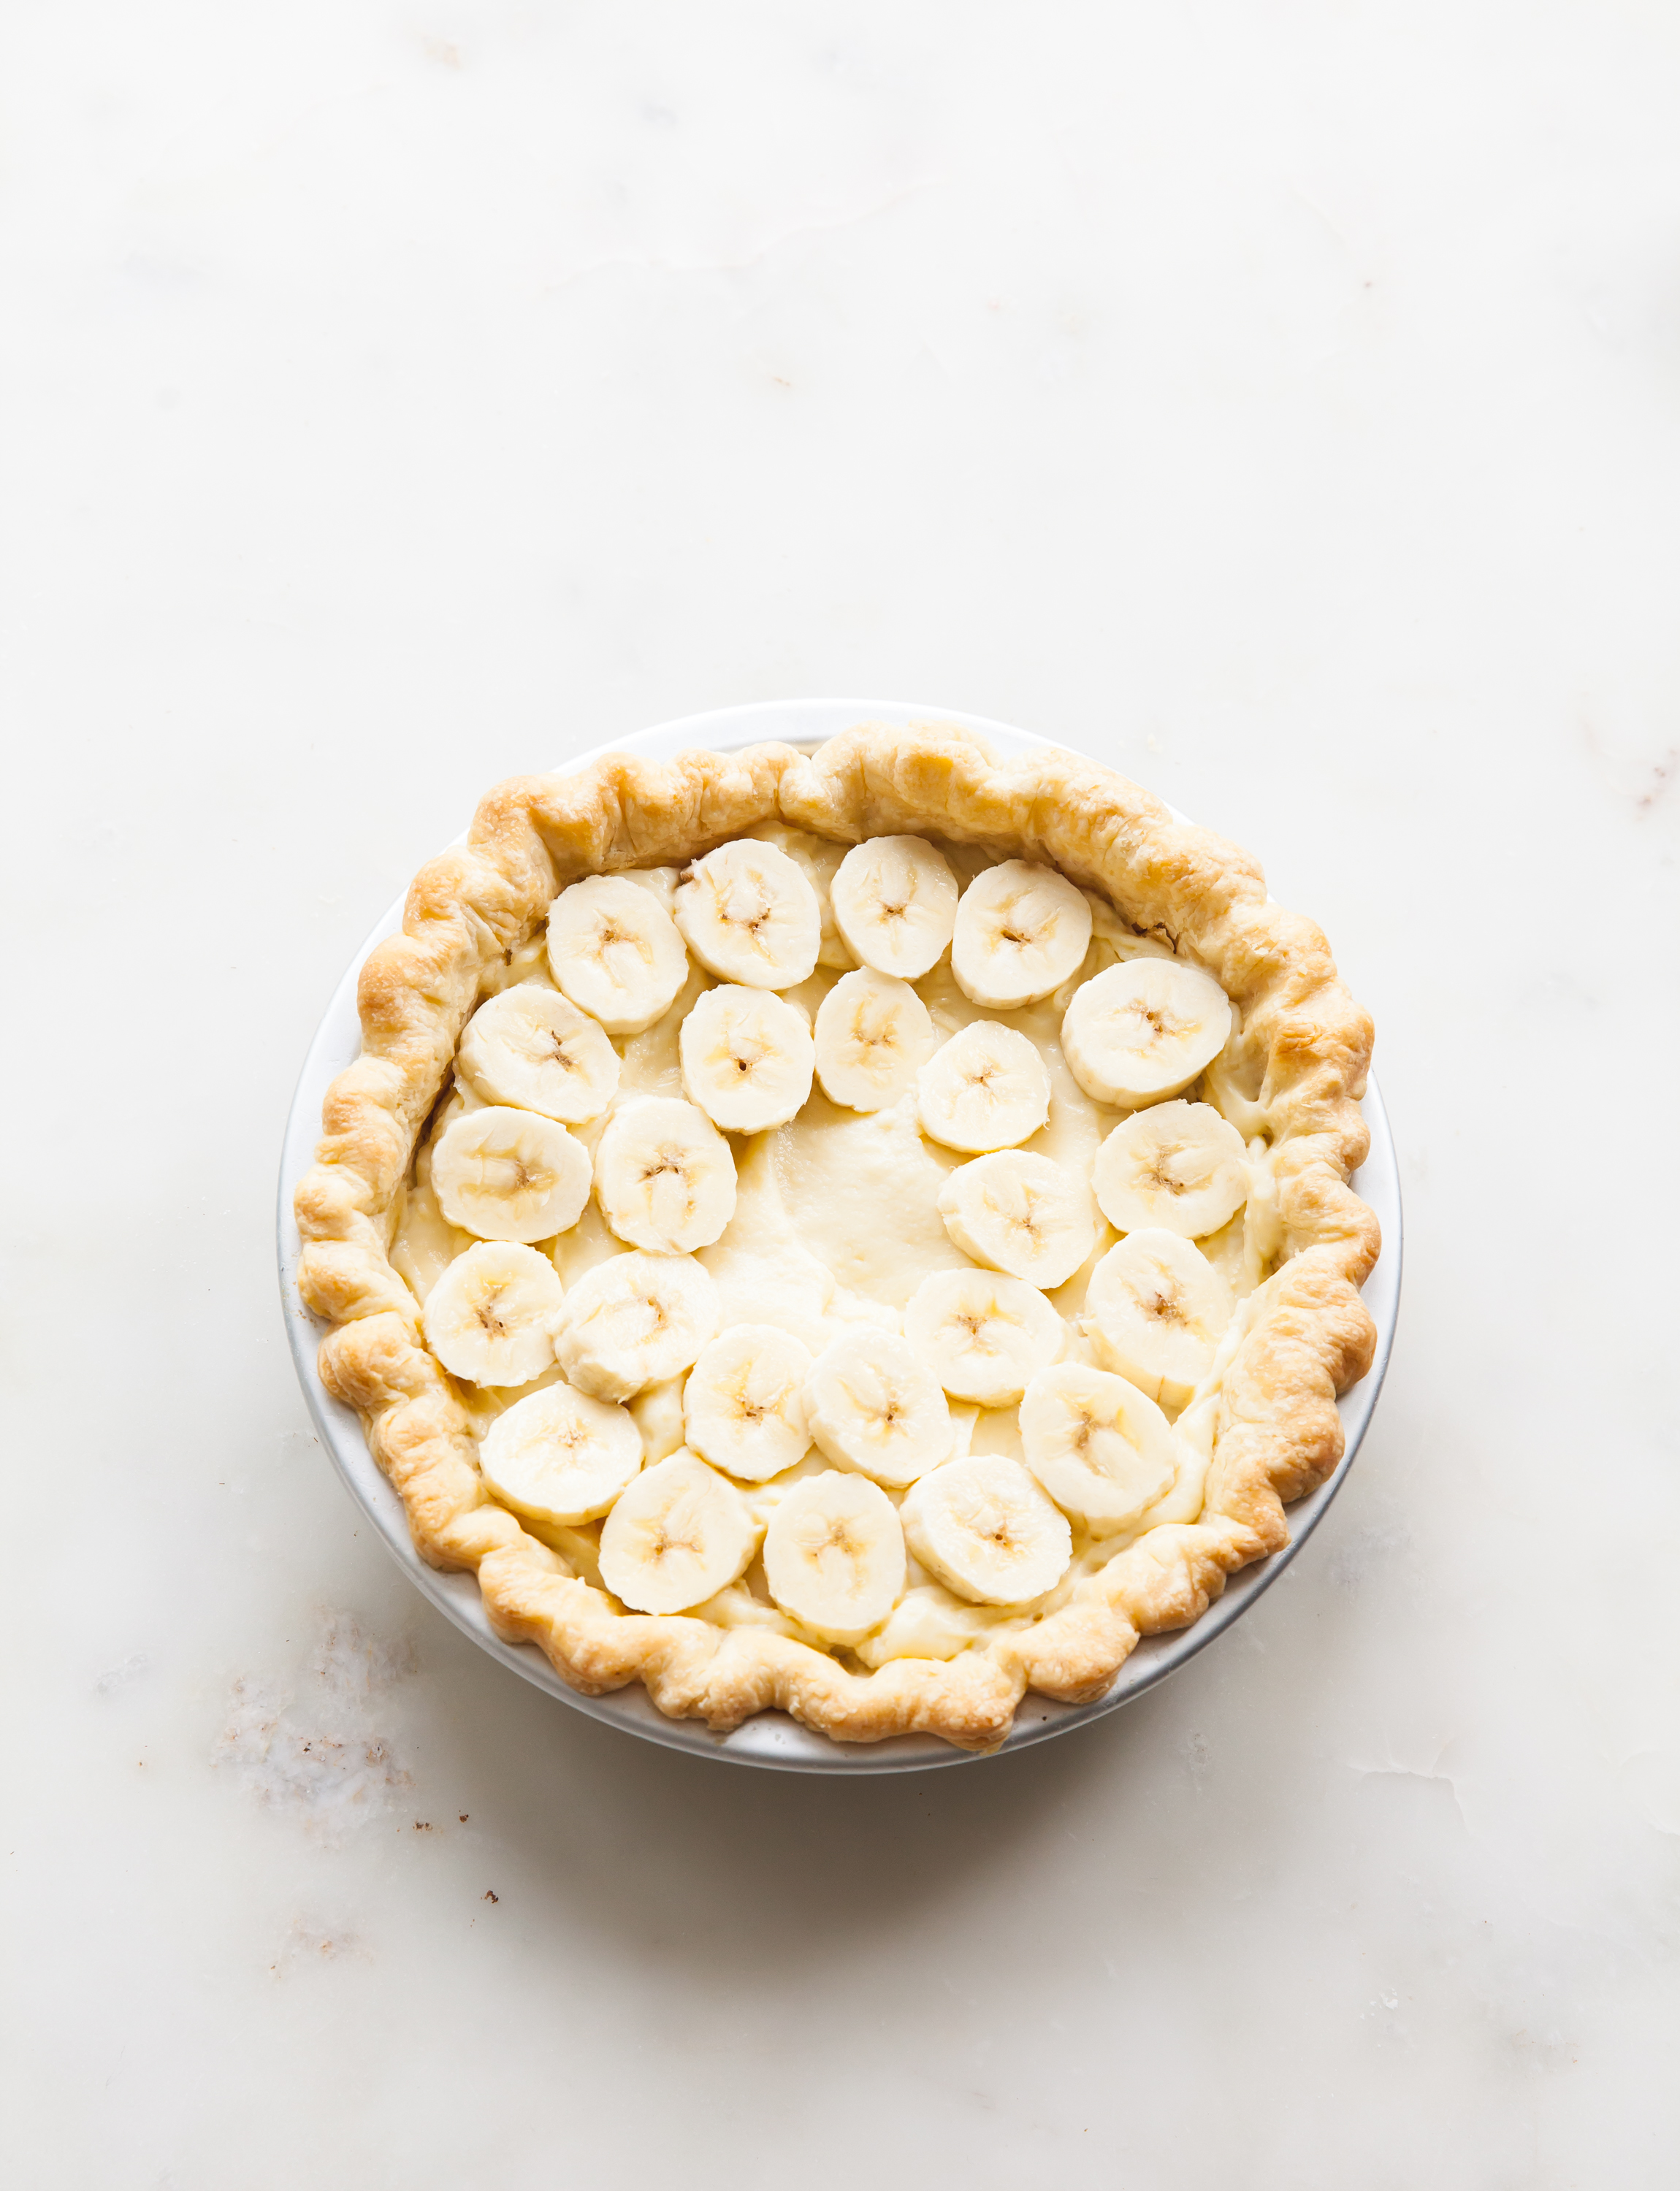 The Best Banana Cream Pie Recipe